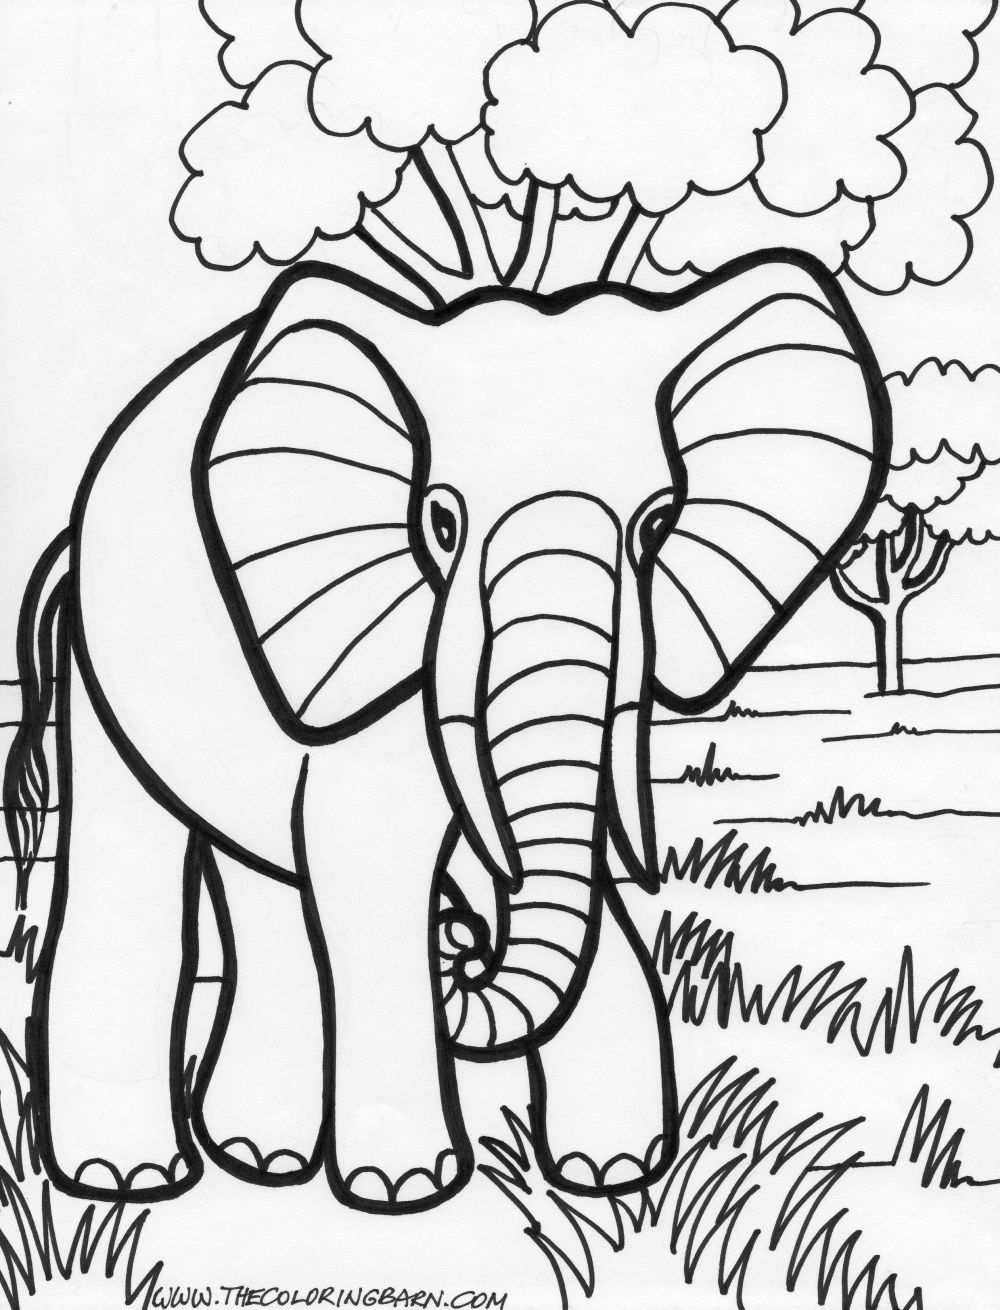 elephant coloring pages | 14 Elephant Coloring Pages for Kids ...